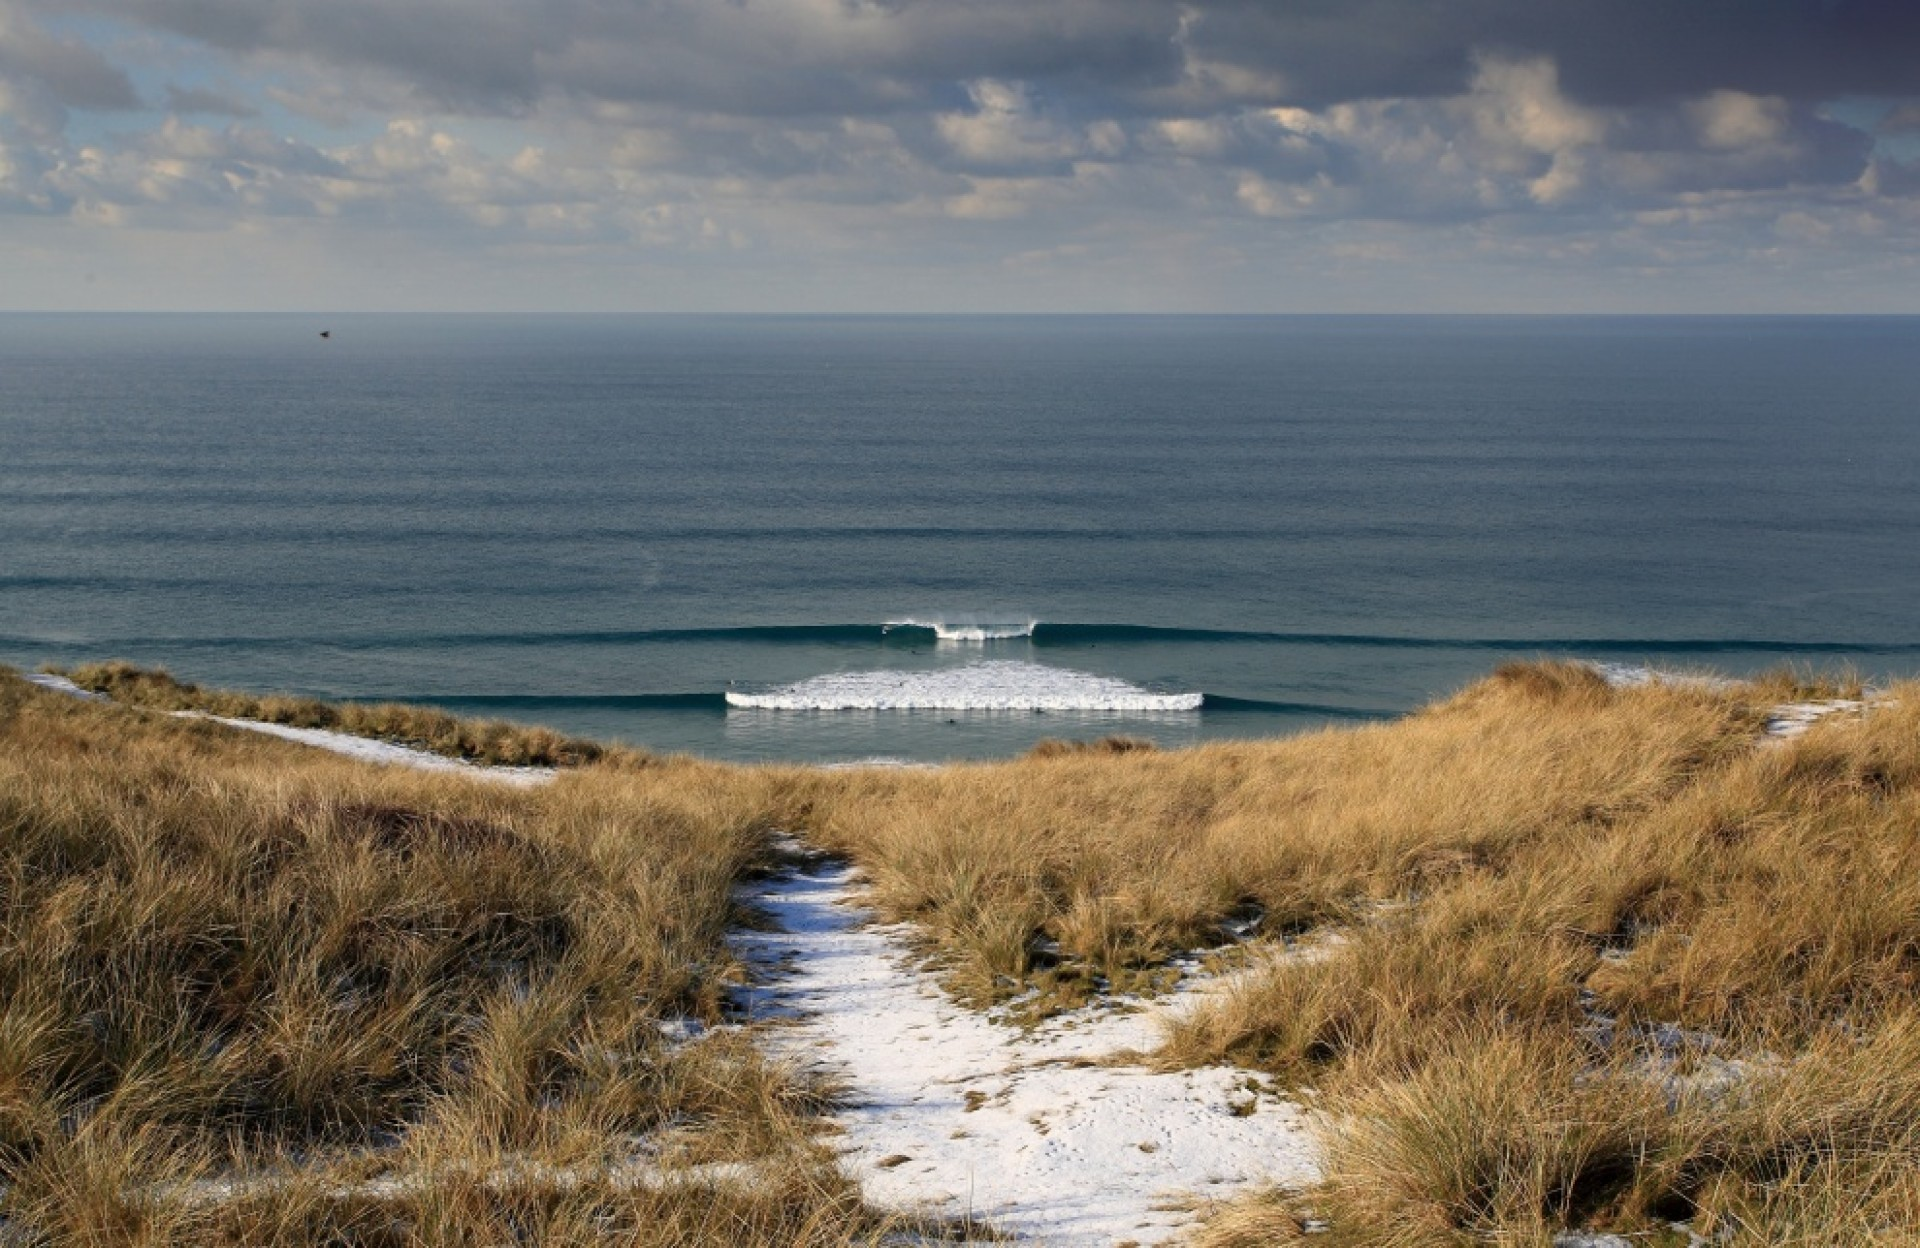 Jason Feast's photo of Penhale (Perran Sands)